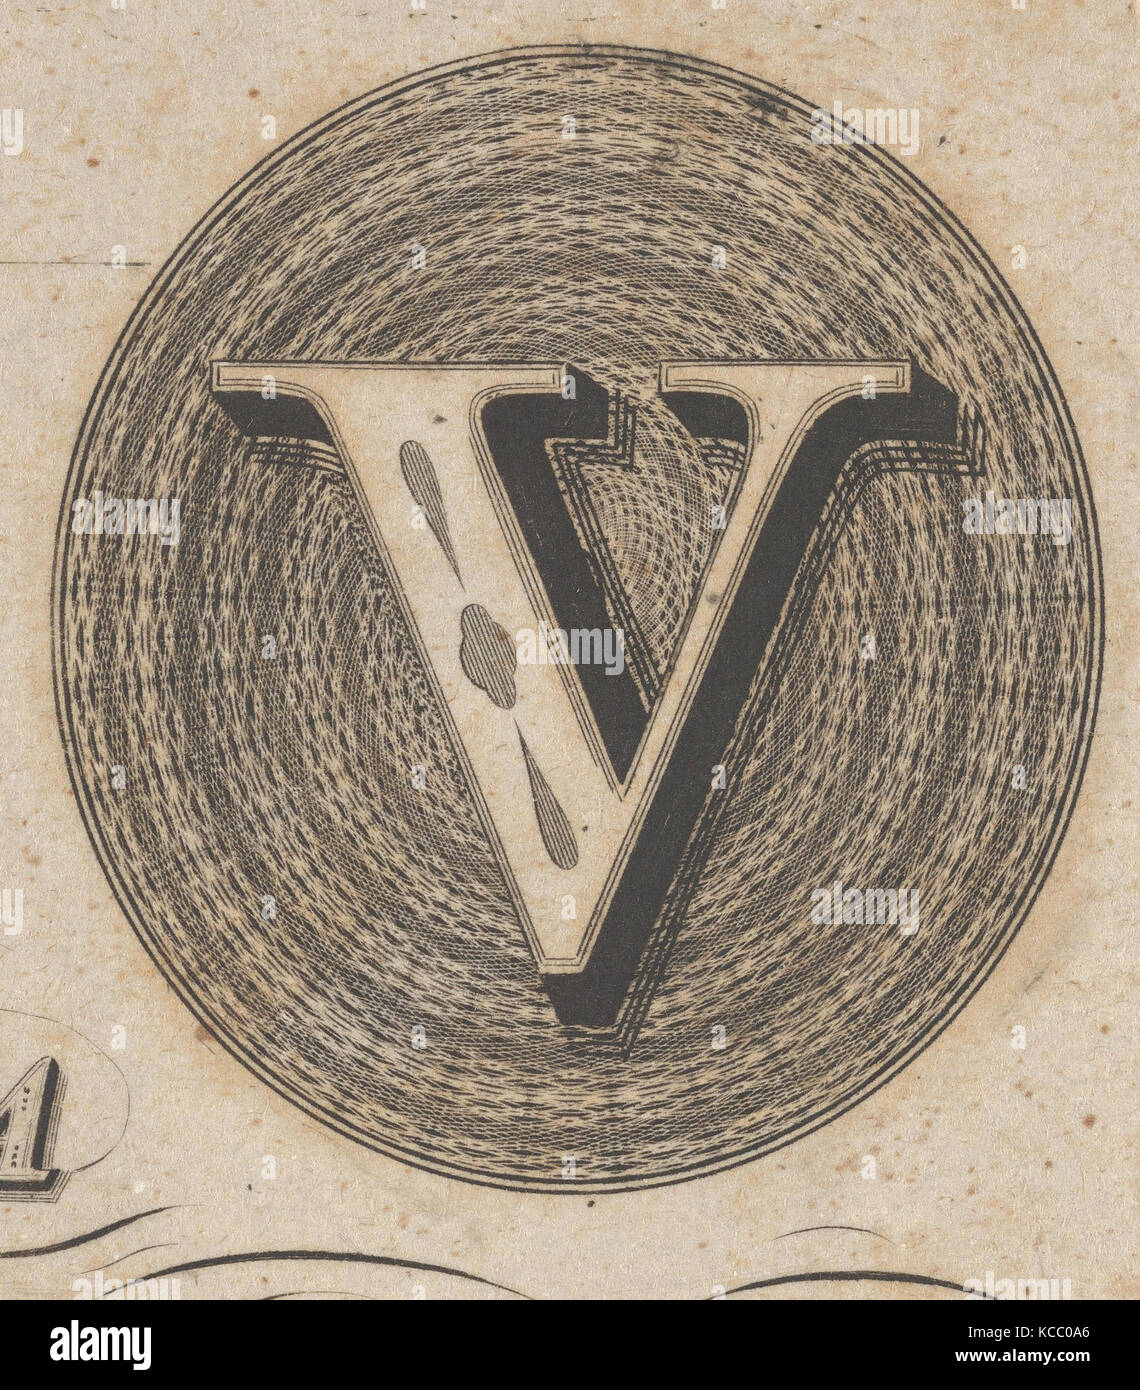 Banknote motif: capital V within an oval containing basket-like lathe work, Associated with Cyrus Durand, ca. 1824–42 - Stock Image